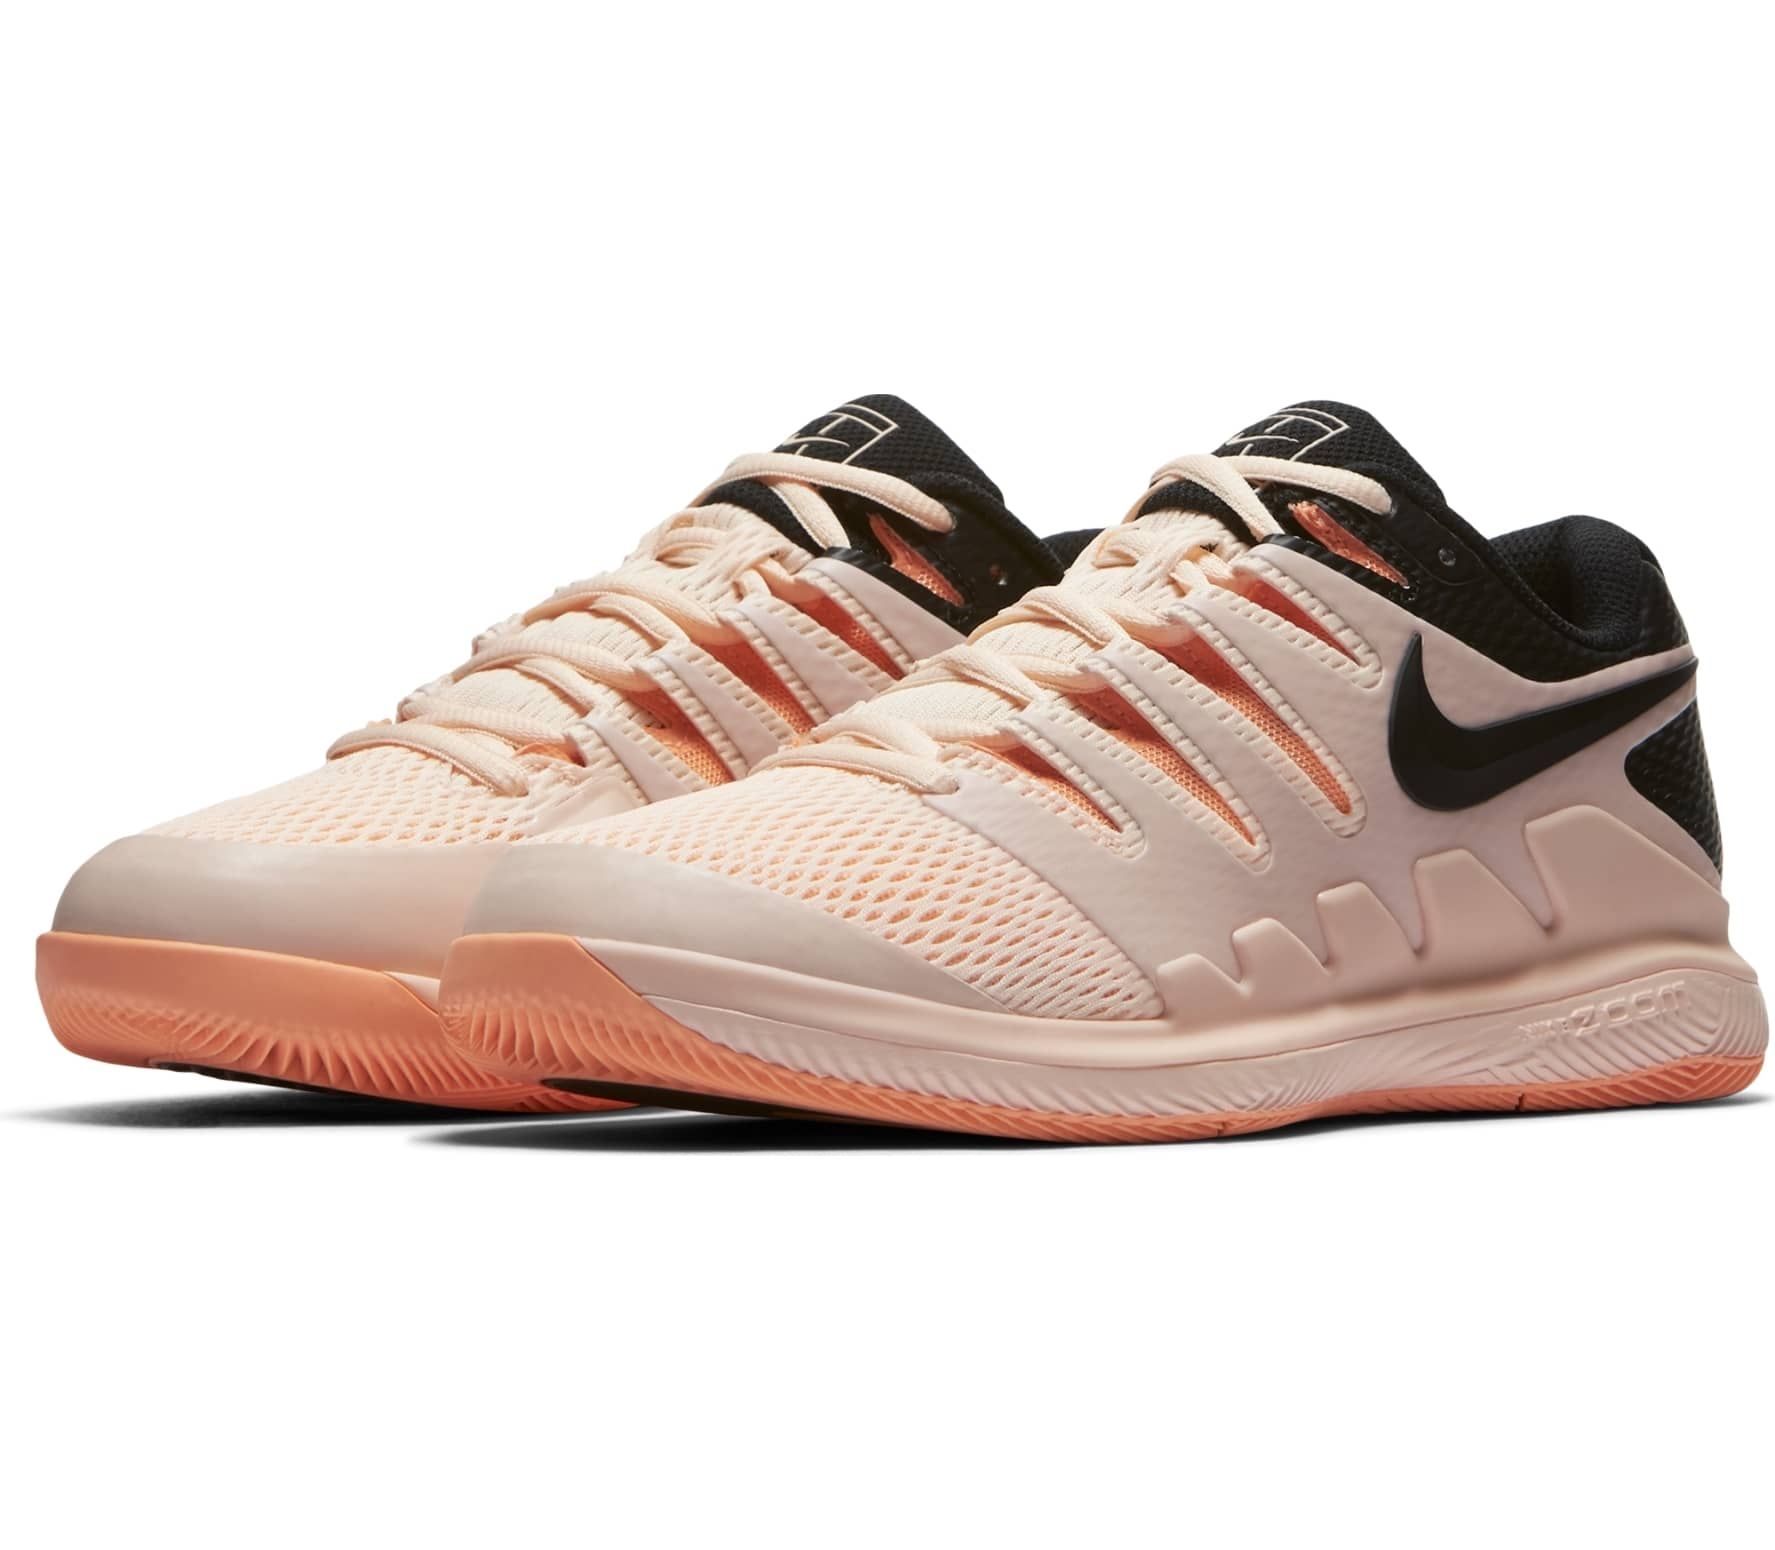 new arrivals 80368 505b6 Nike - Air Zoom Vapor X womens tennis shoes (pinkblack)